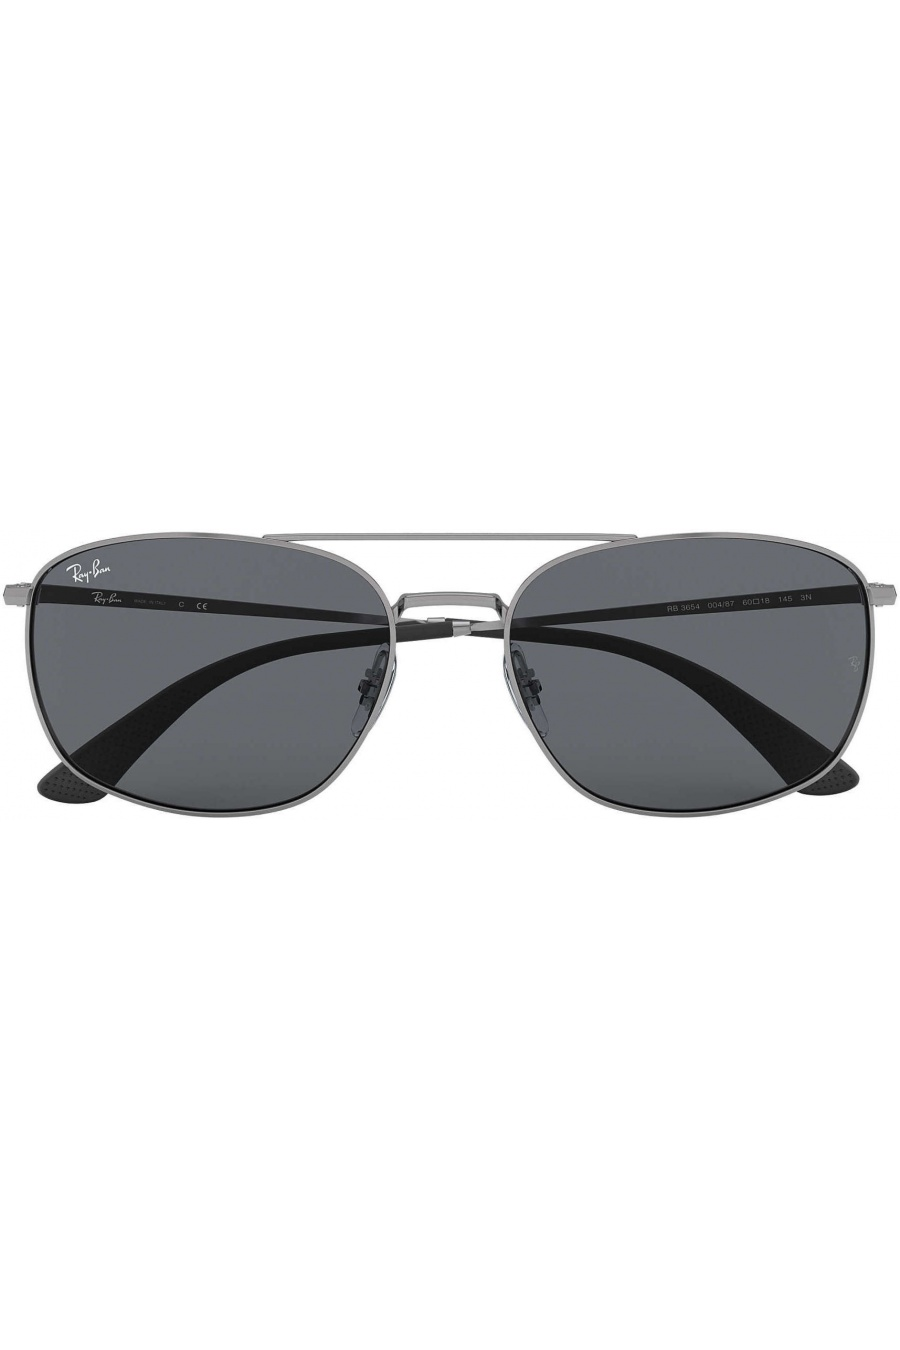 Ray-Ban RB3654 004/87 Front